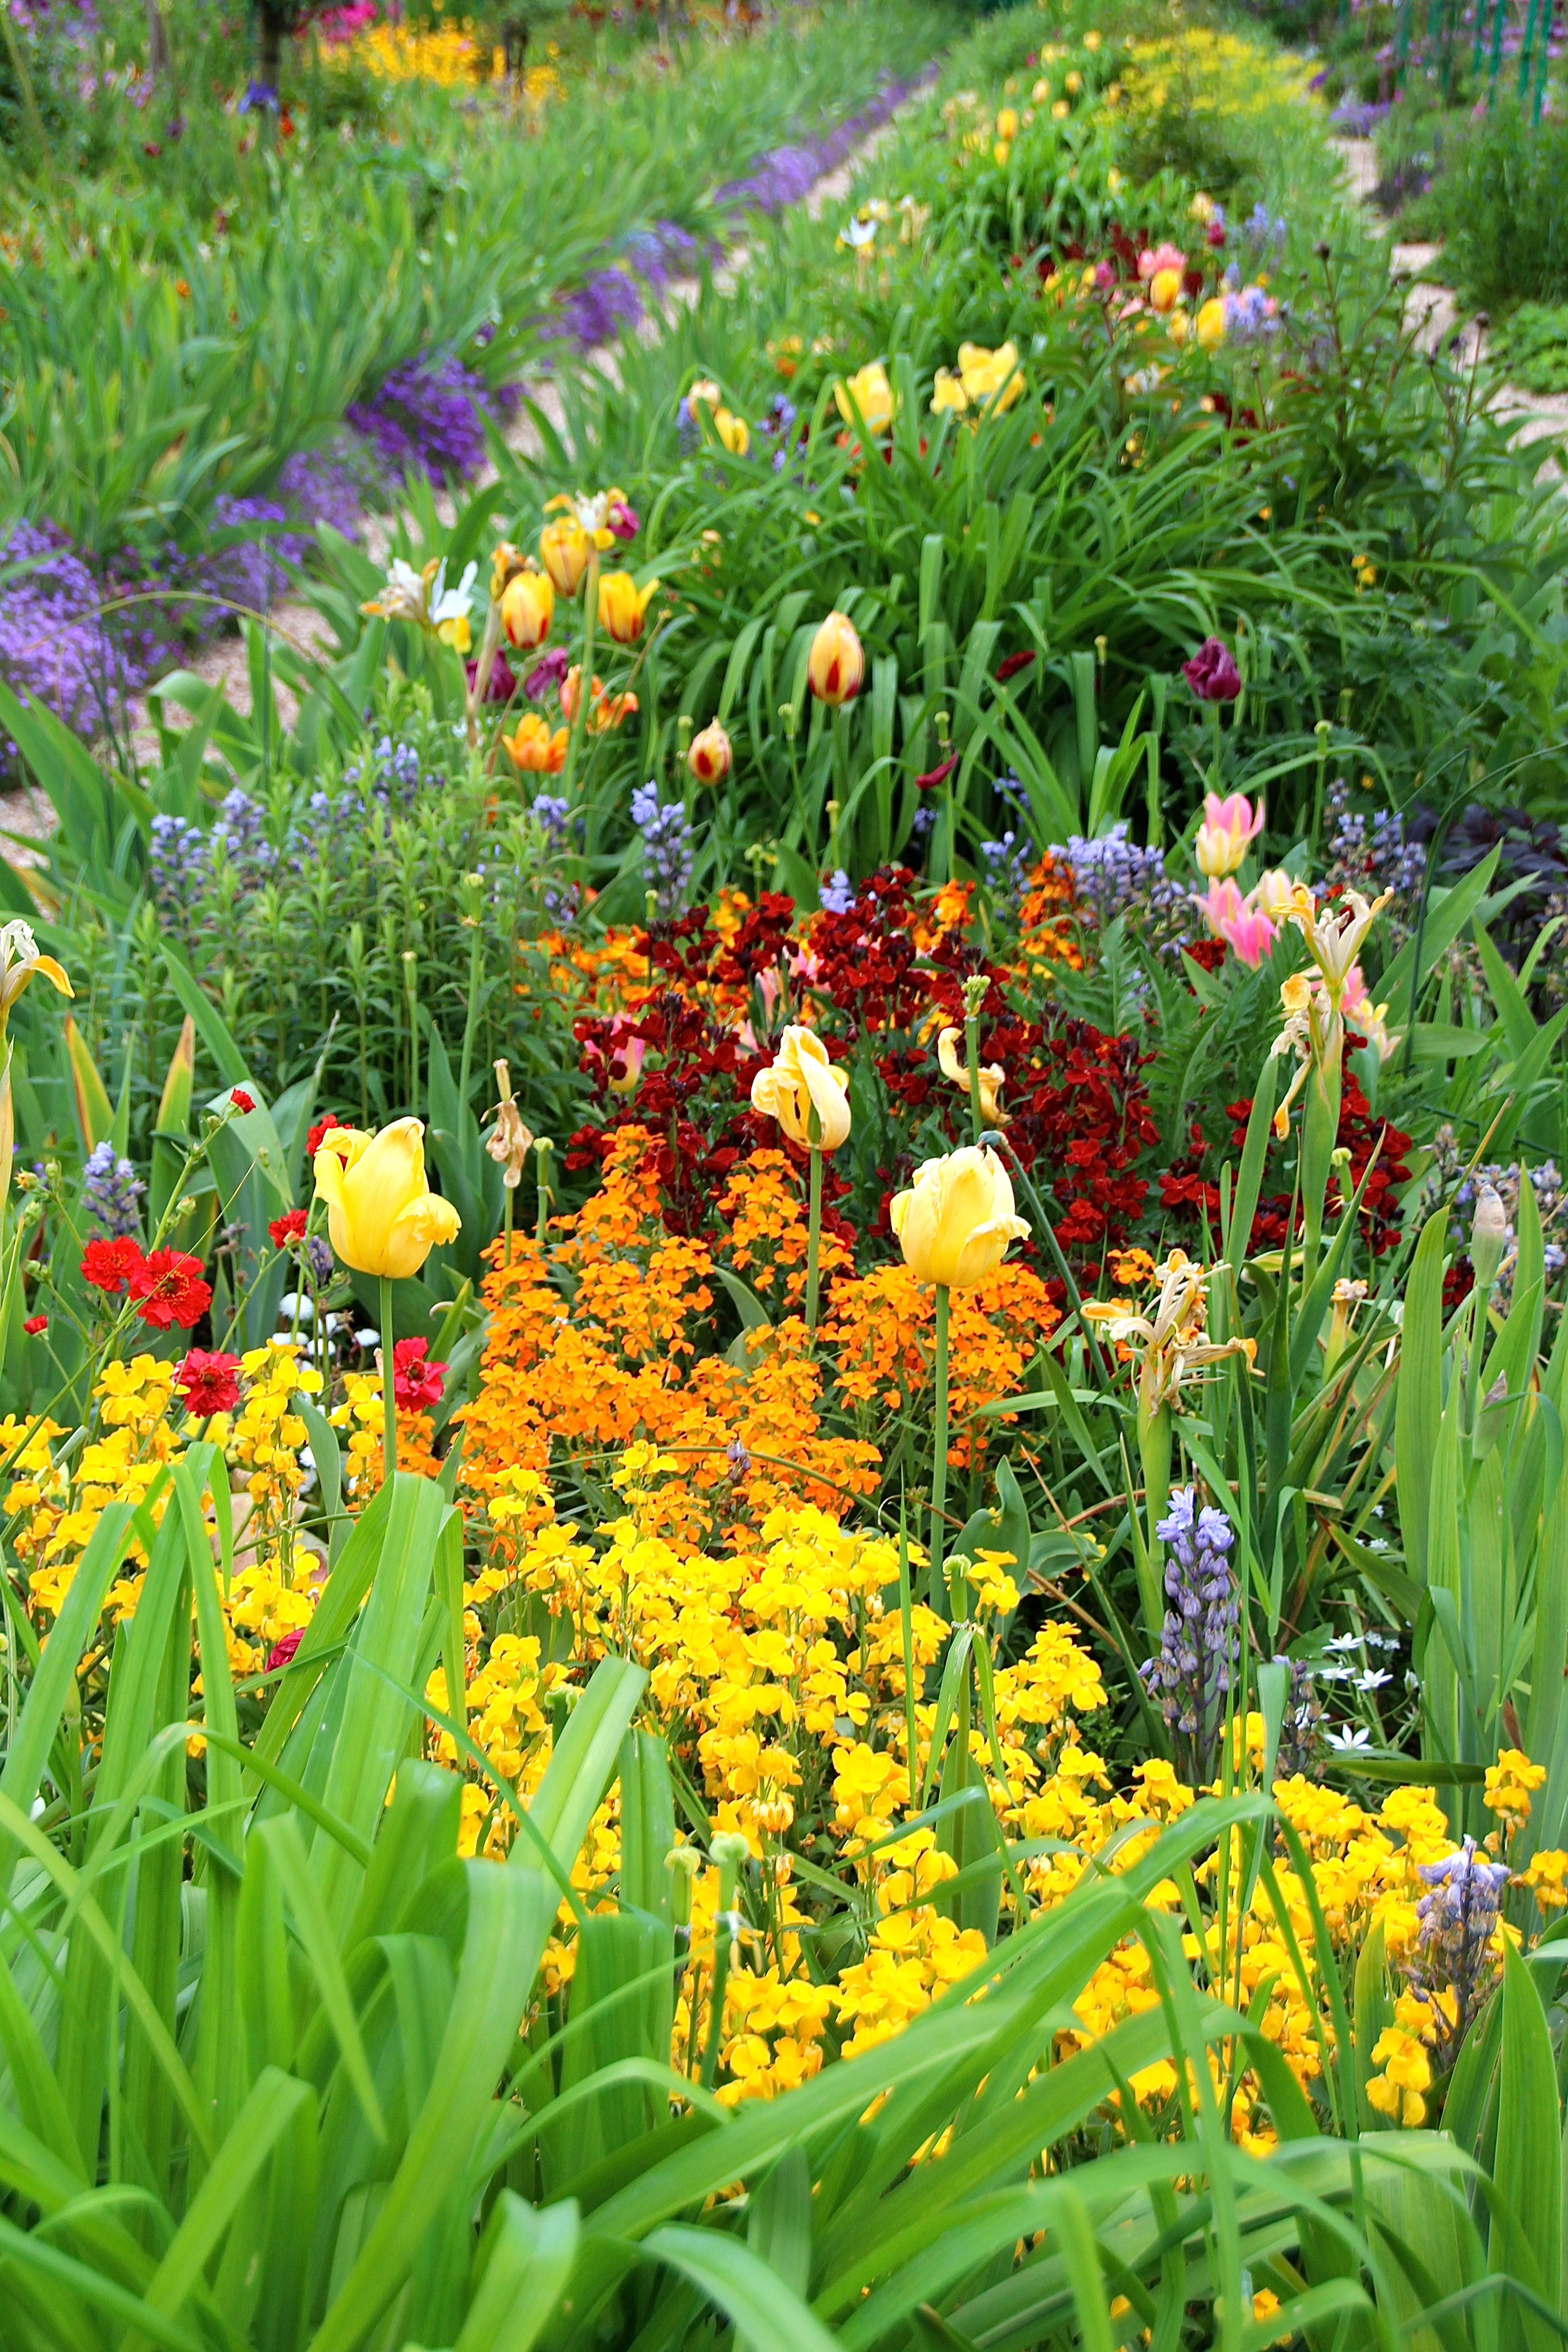 Spring flowers blooming at Giverny. France. 05.09.16. 4